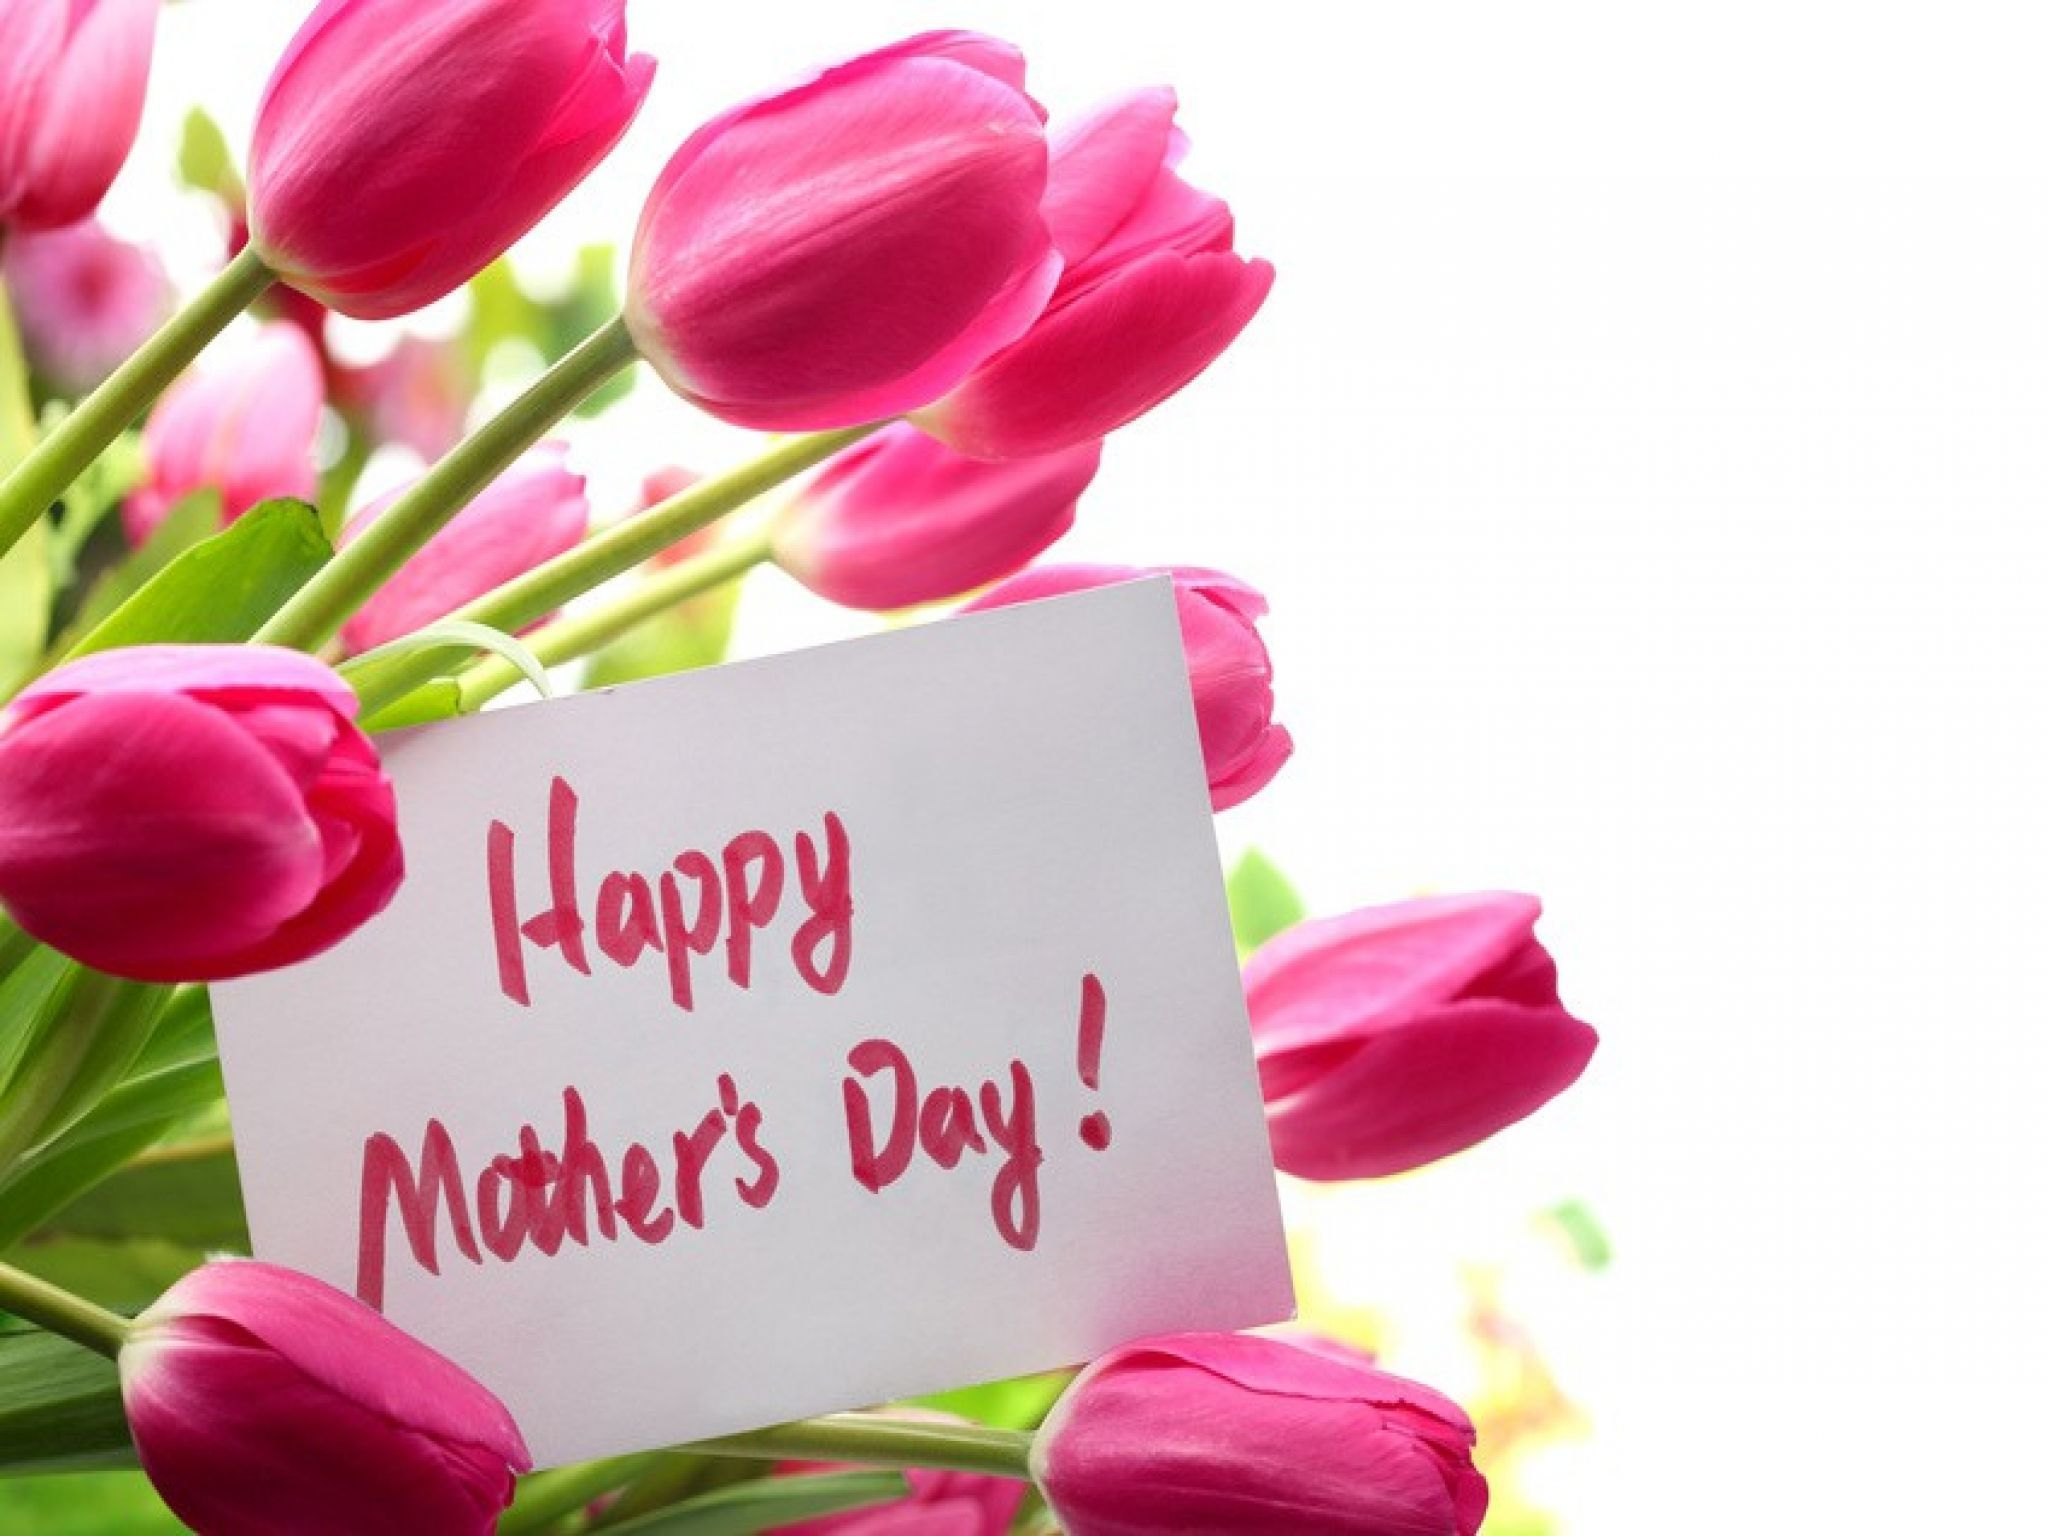 2048x1536 Mother's Day 2018 Wallpapers